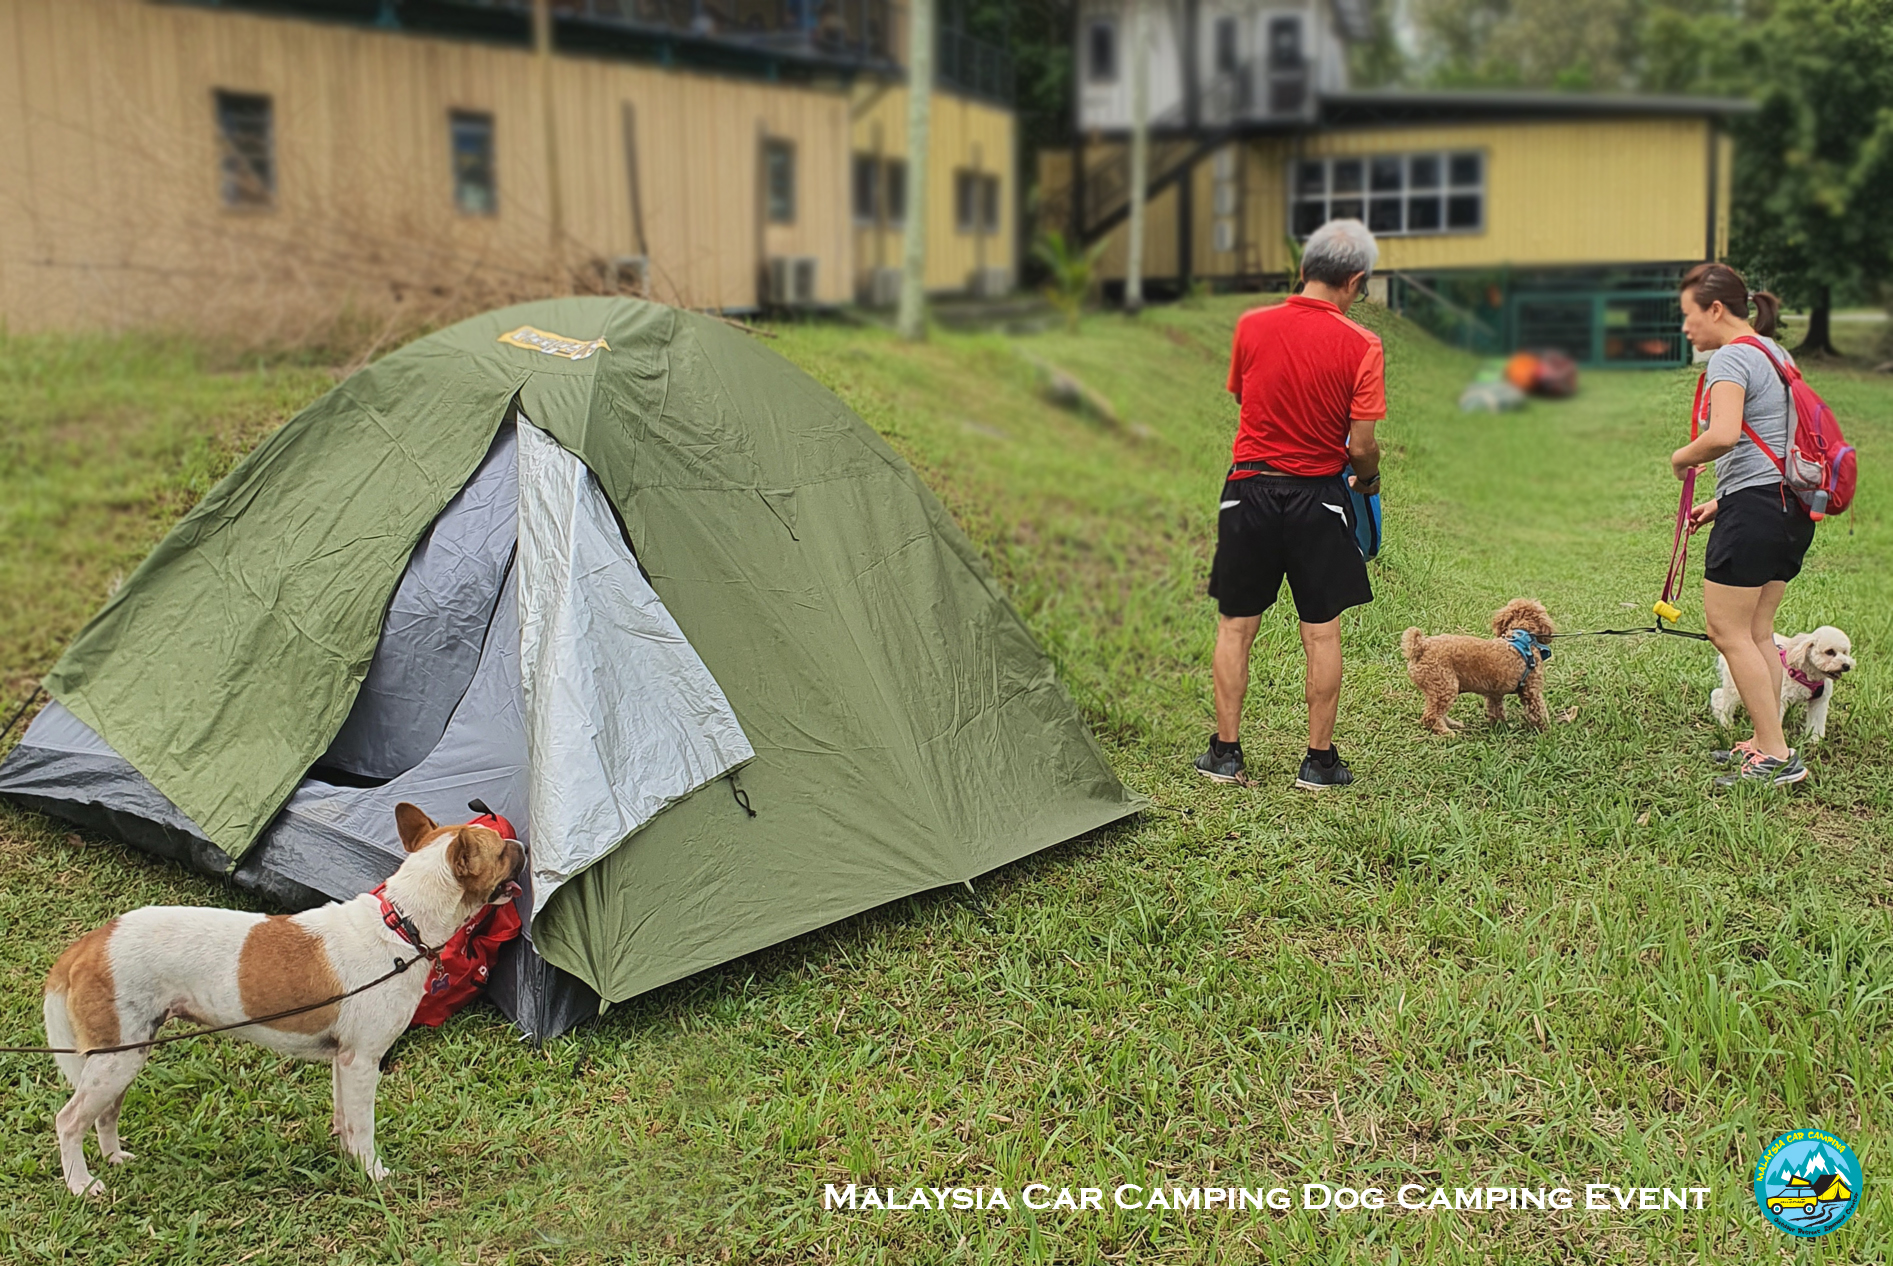 dog_camping_event_selangor_camping_site_malaysia_car_camping_private_event_organizer